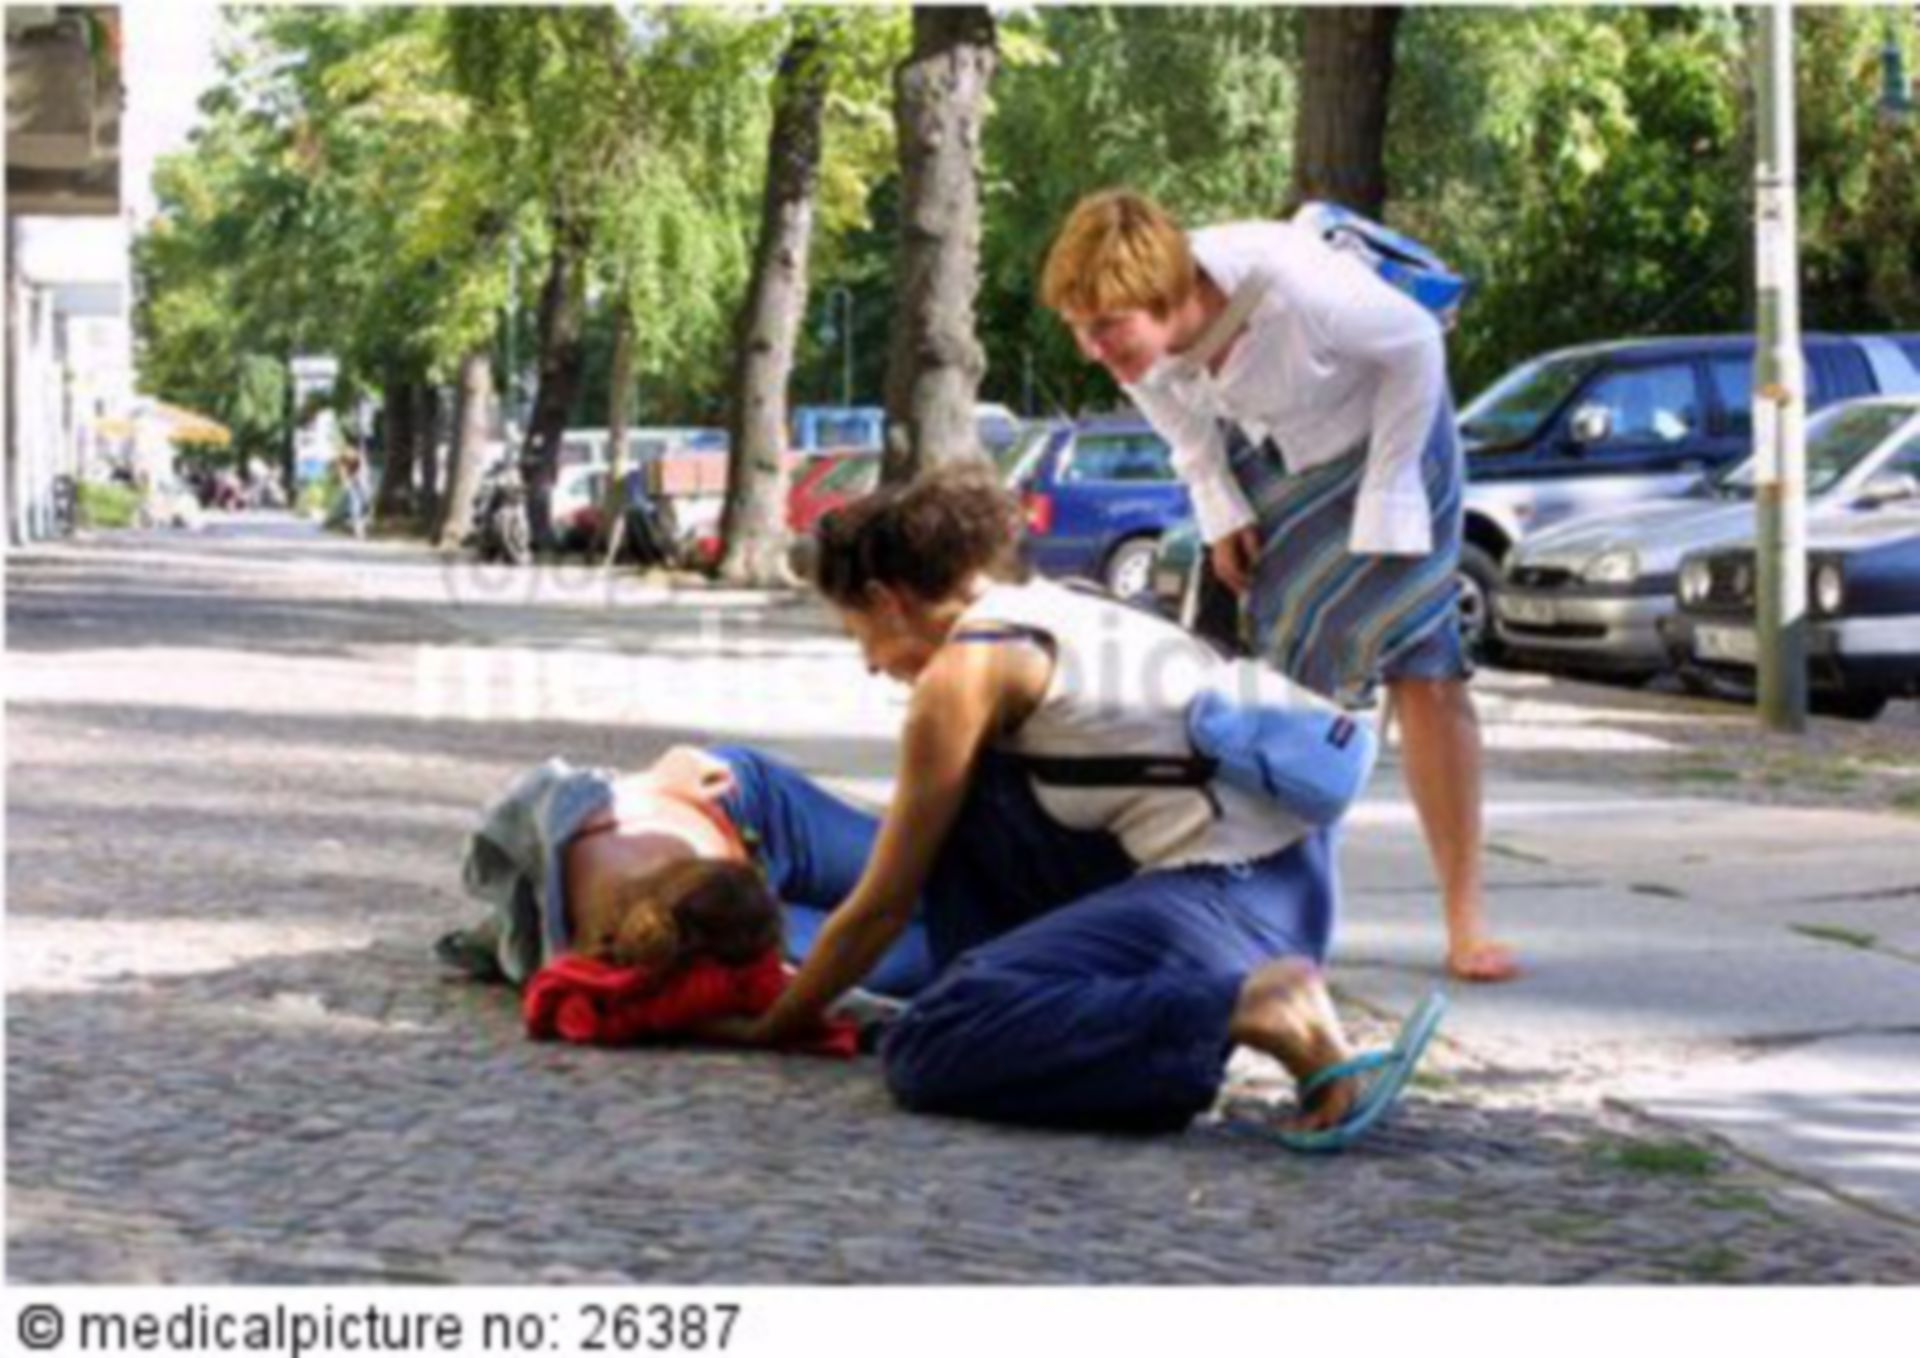 Unconscious person on the street with first responders